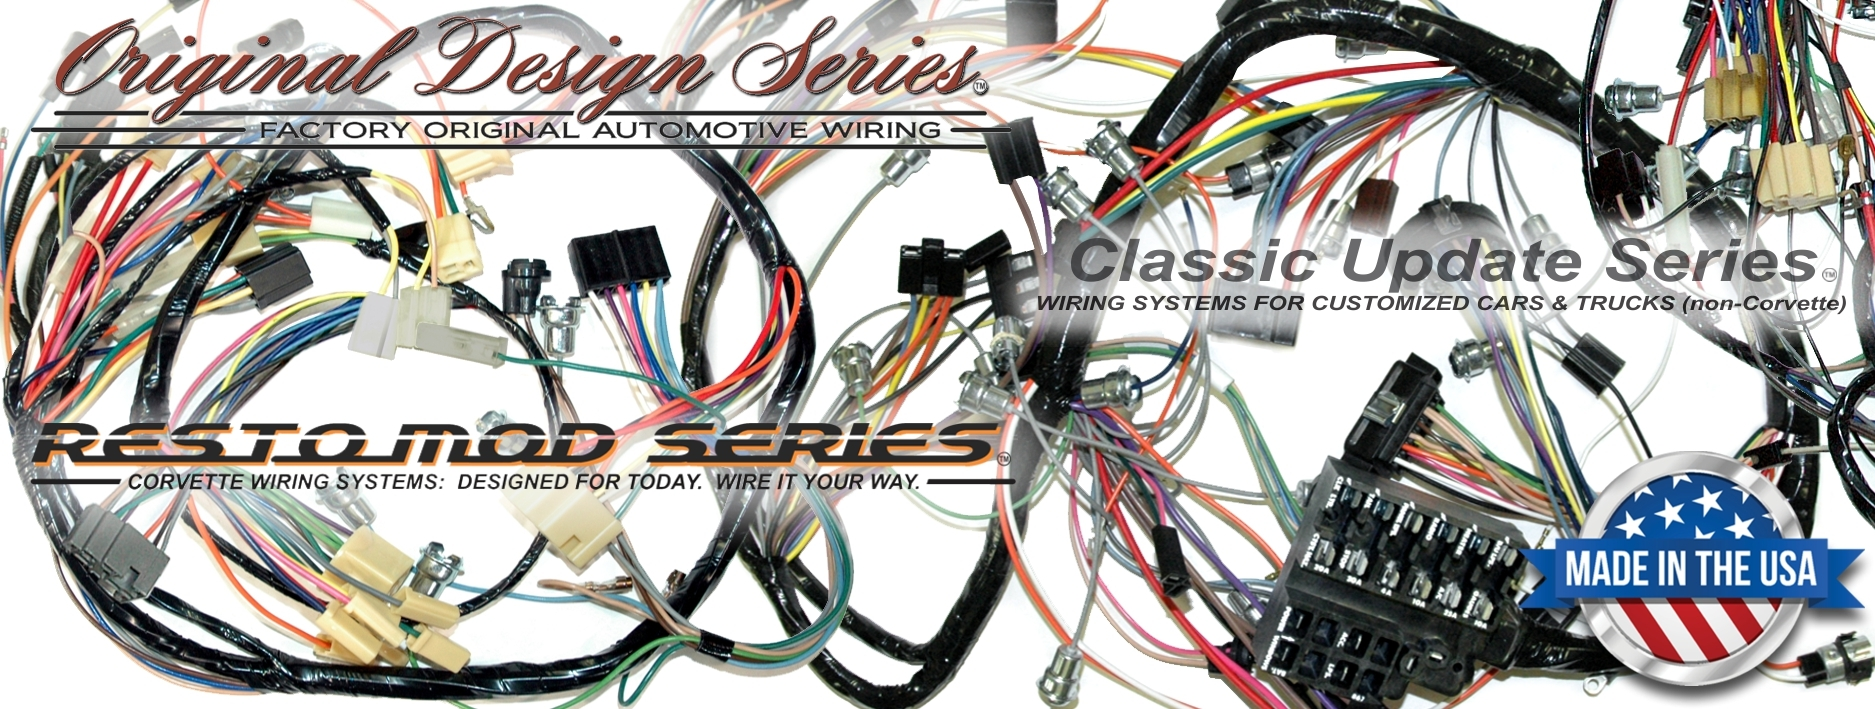 exact oem reproduction wiring harnesses and restomod wiring systems rh lectriclimited com 1979 corvette dash wiring harness 1979 Corvette AC Wiring